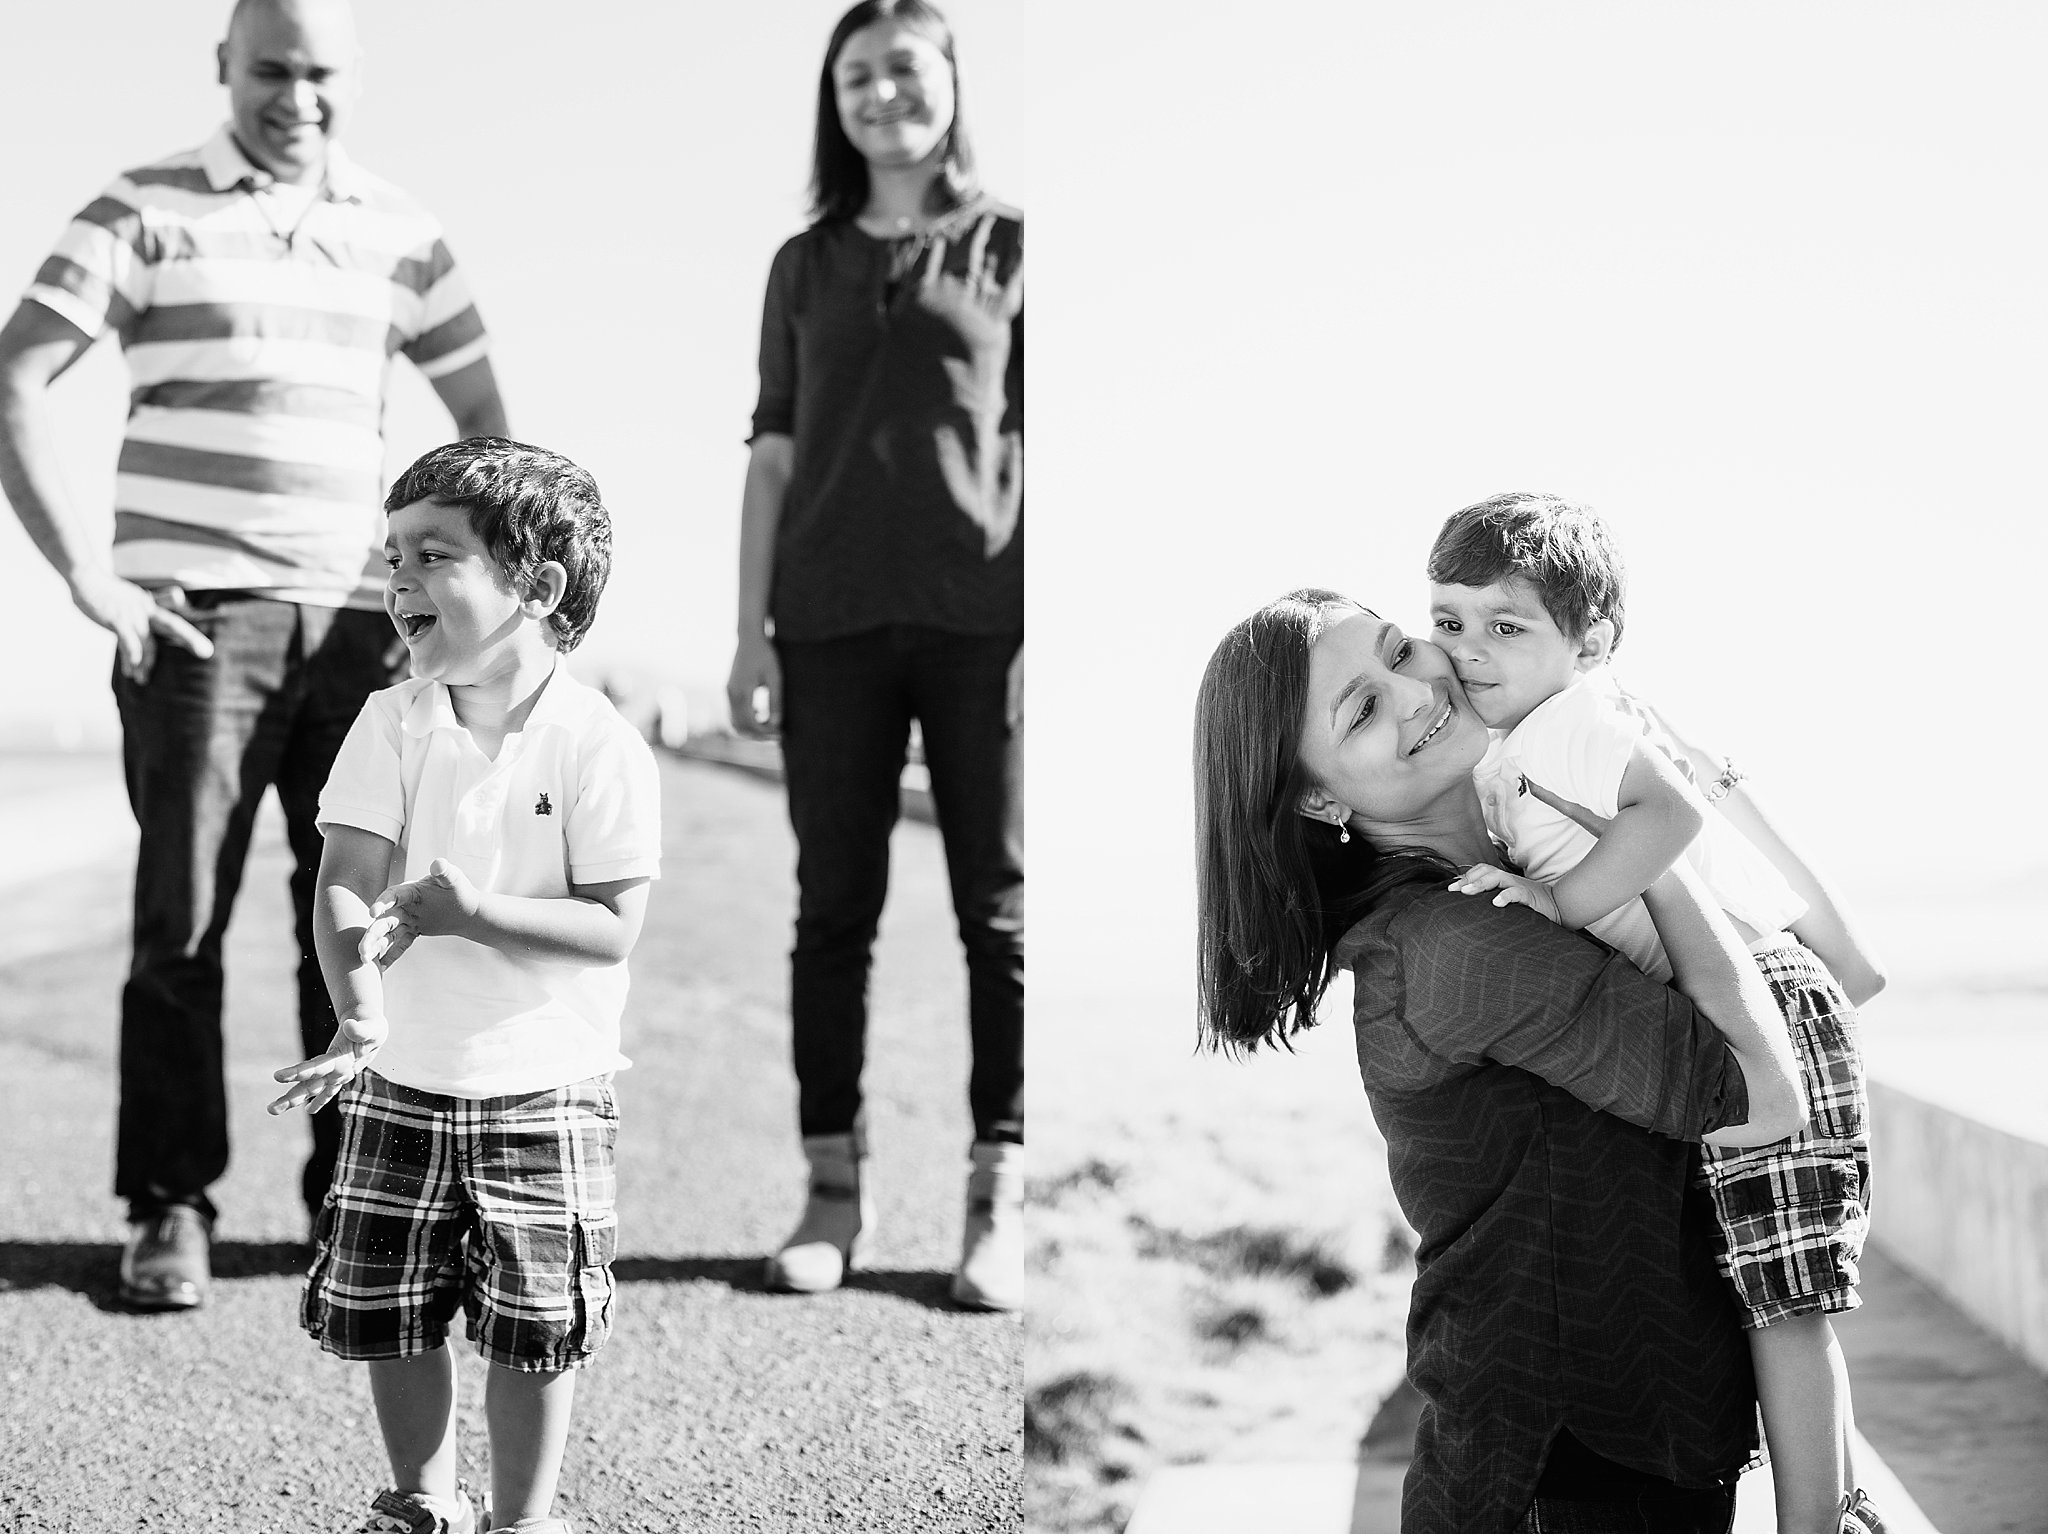 jennifer-jayn-photography-san-francisco-warming-hut-family-session_0007.jpg